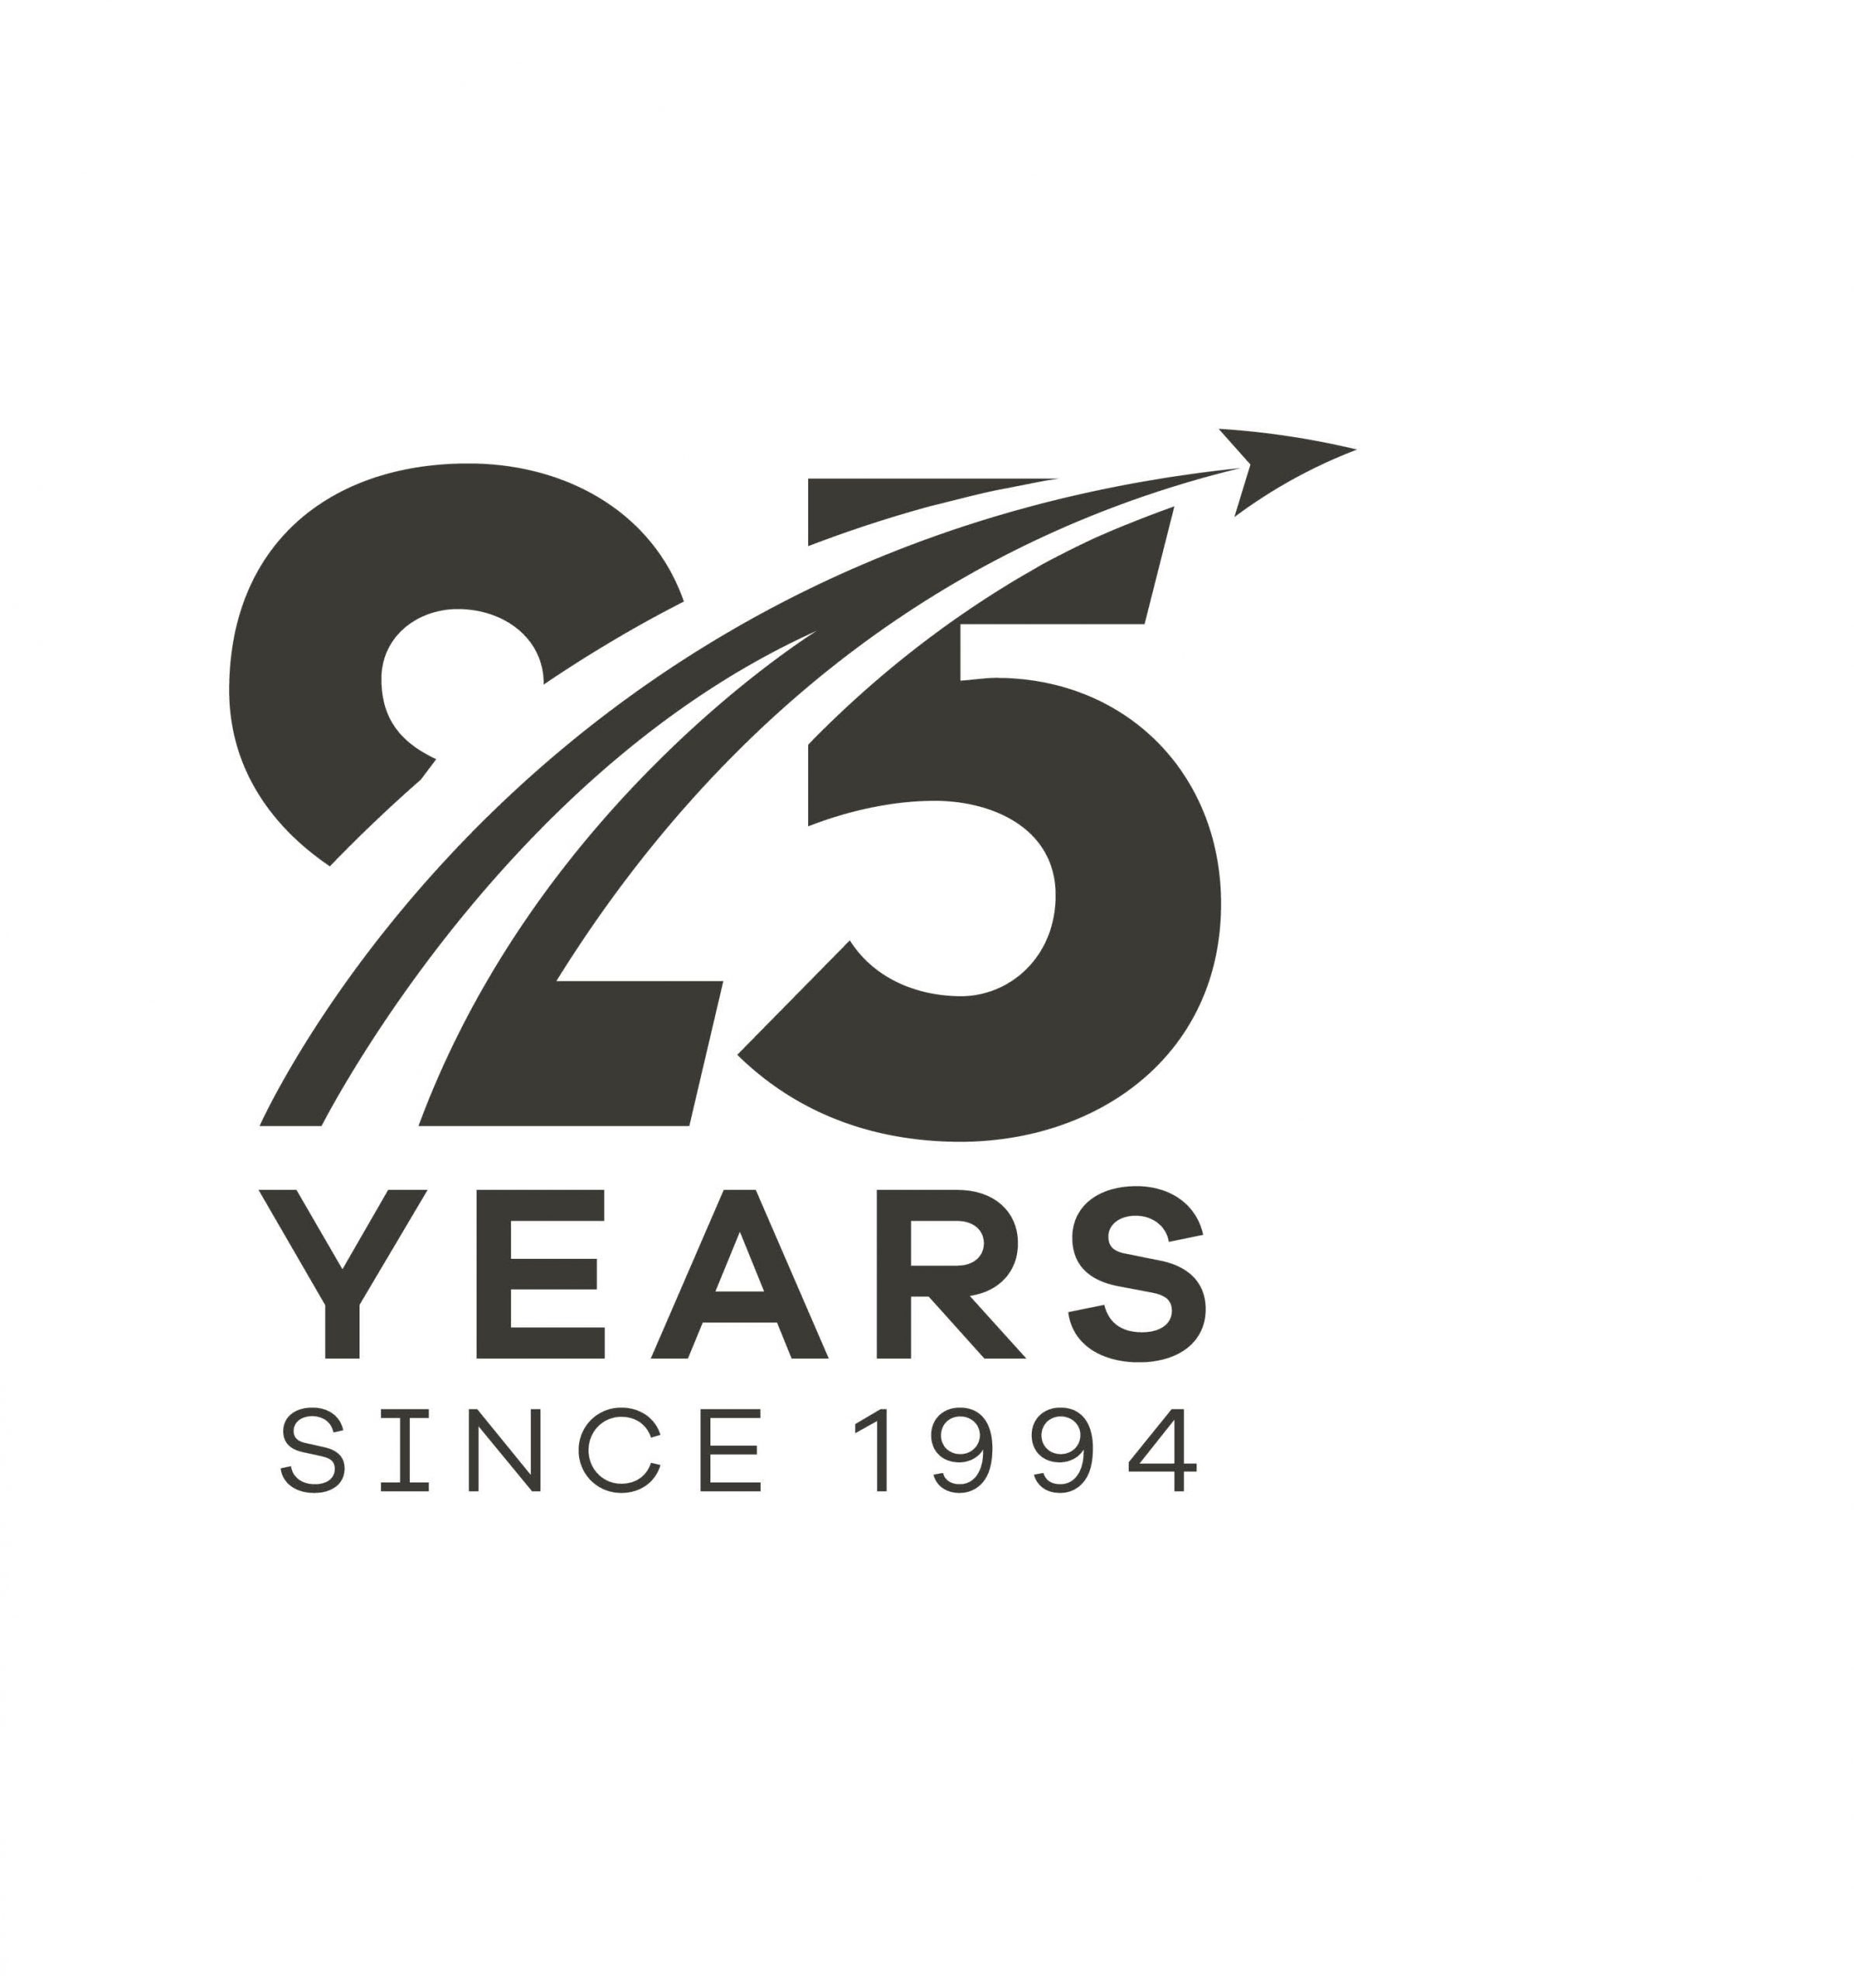 https://acass.com/wp-content/uploads/2019/09/25-Years-Logo-scaled.jpg